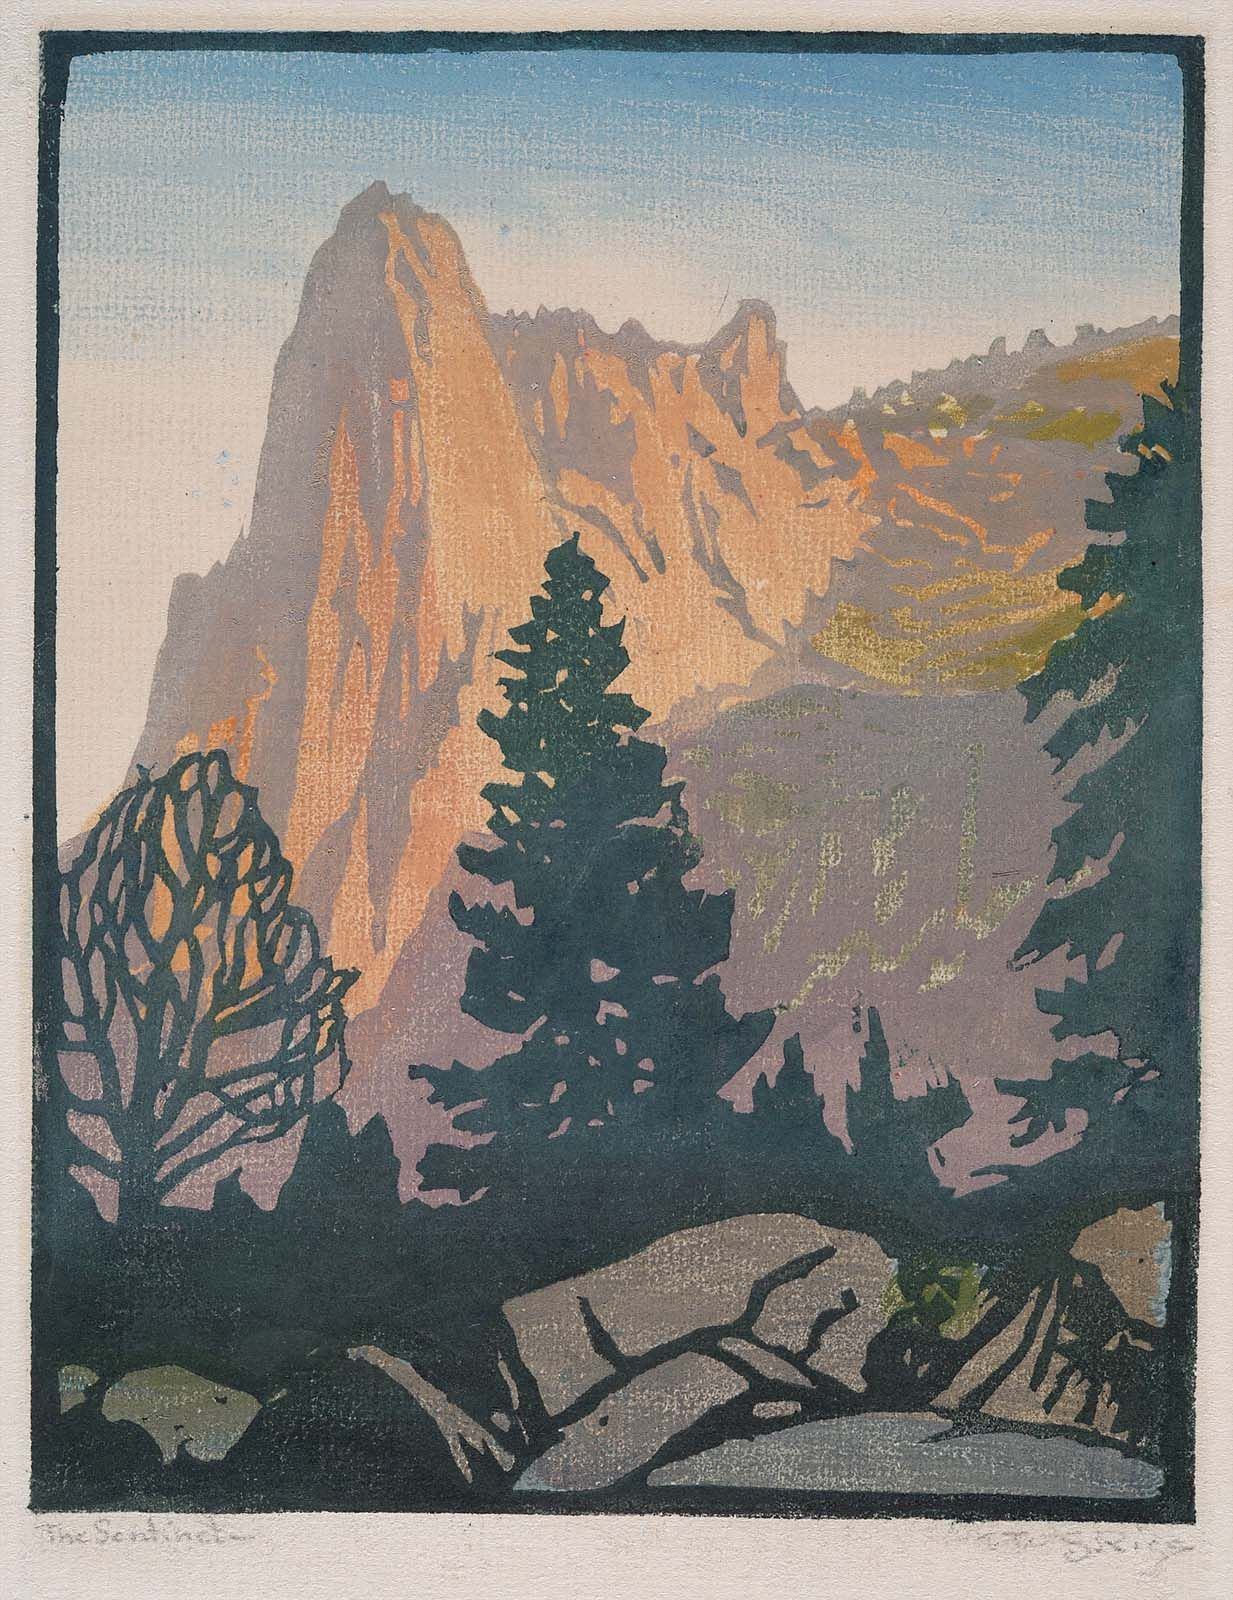 The Sentinel Yosemite William Rice Ca 1920 Color Woodcut 8 15 16 X 7 Museum Of Fine Arts Boston